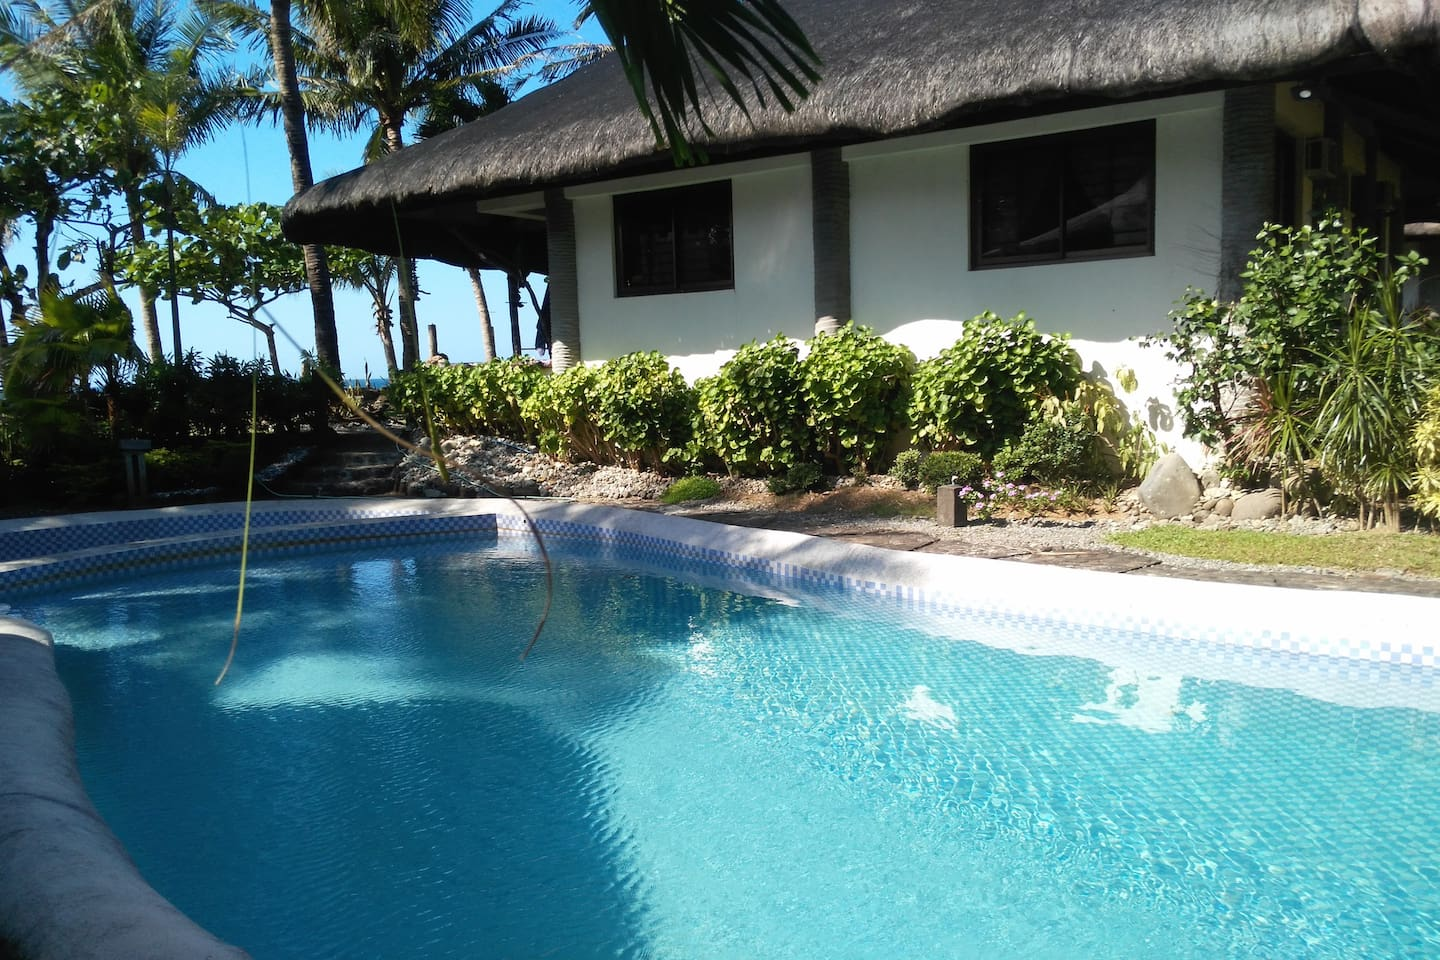 Beachfront house with private pool.